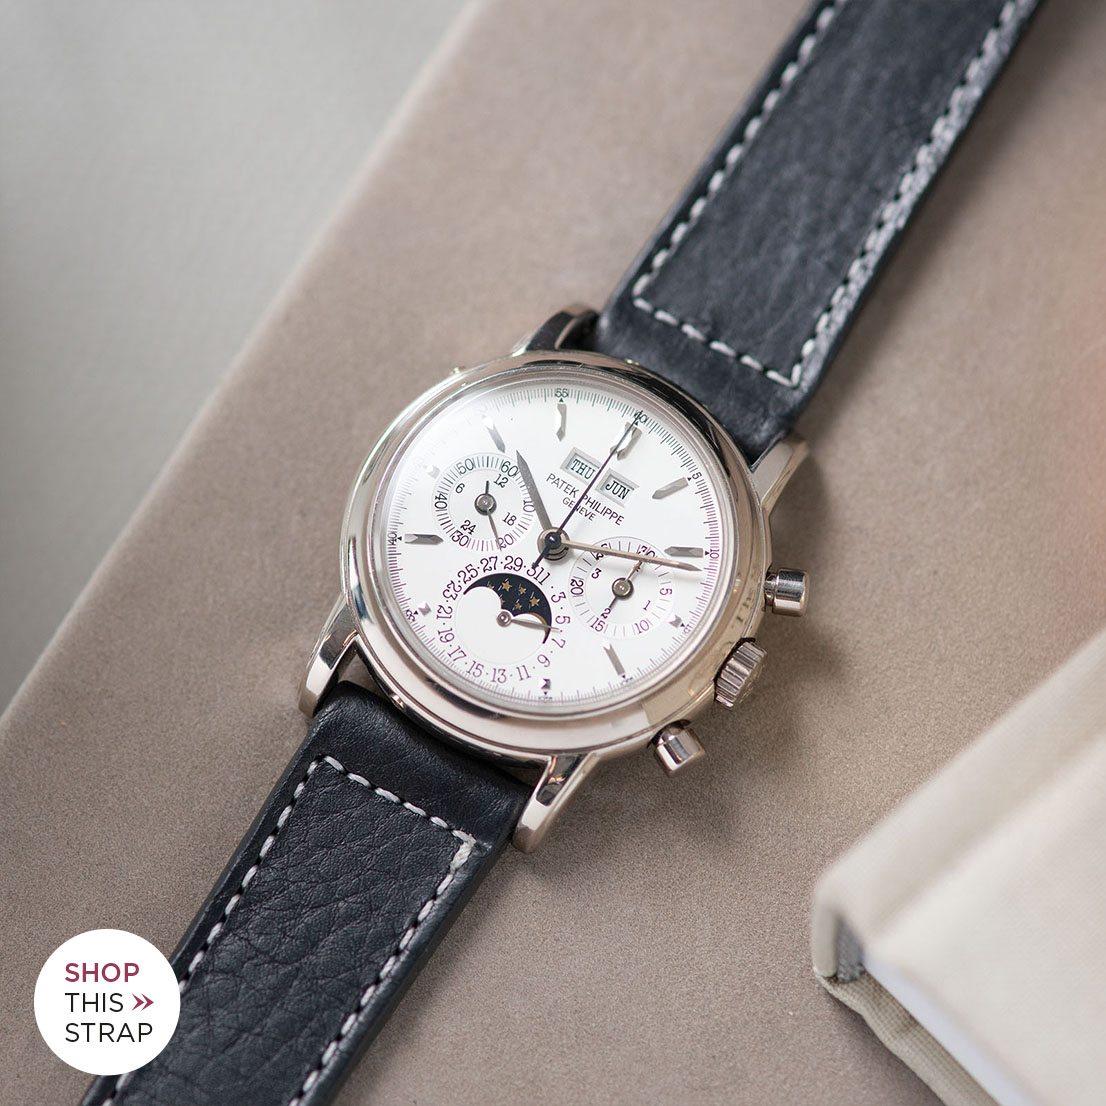 Bulang and Sons Strap Guide Patek Philippe 3970 G White Gold Perpetual Calendar